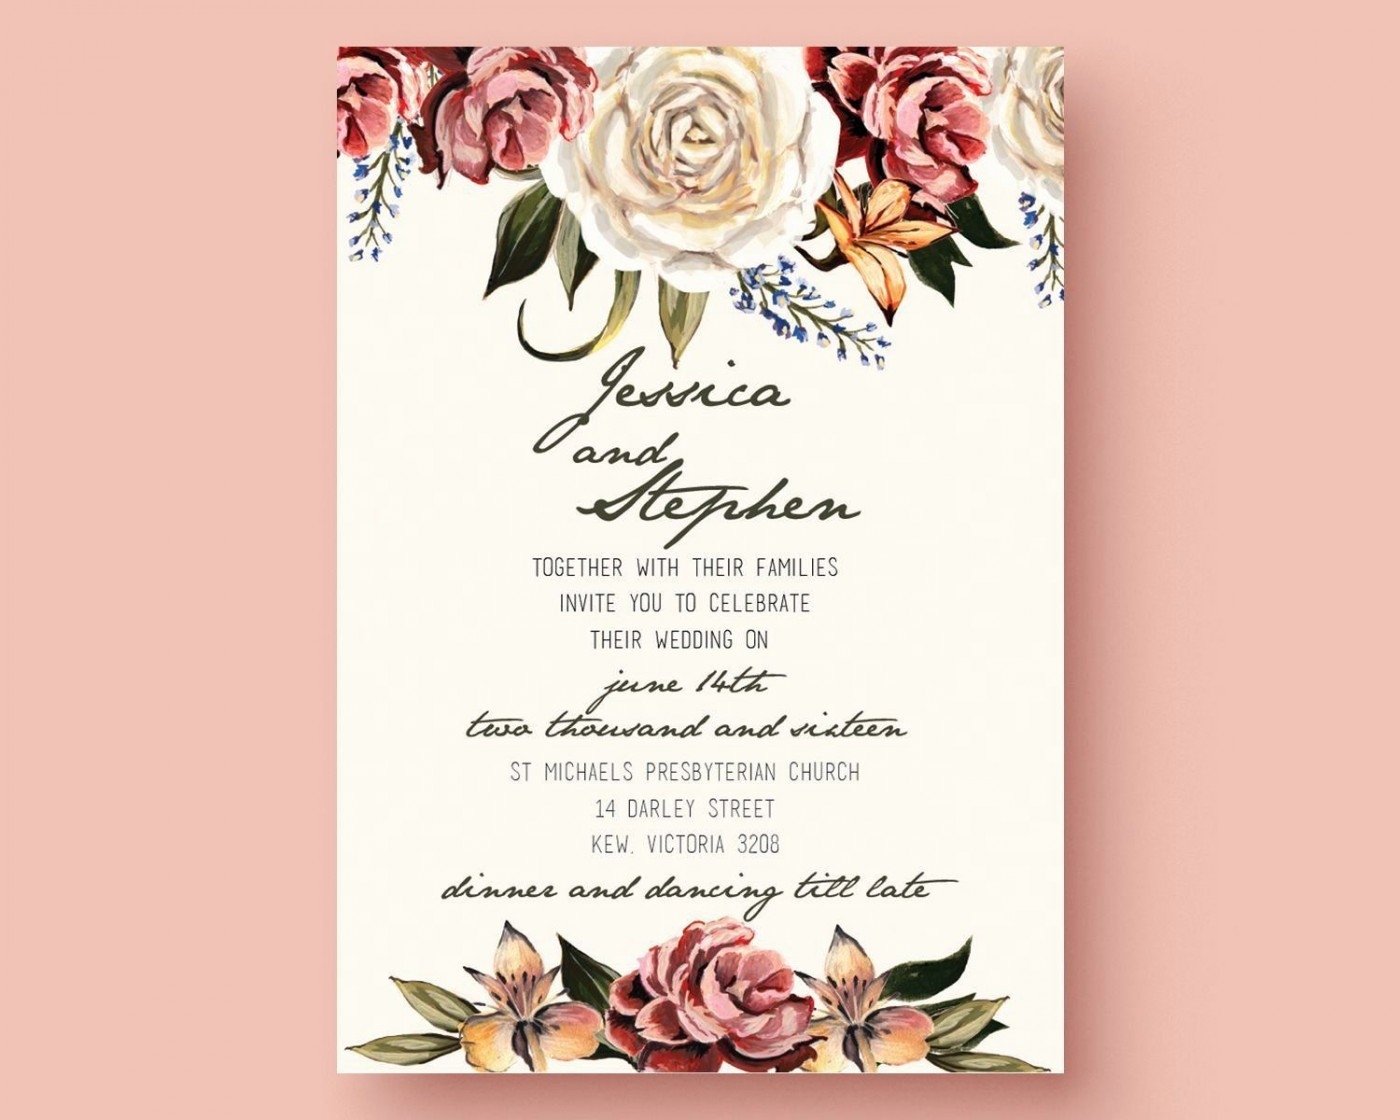 000 Magnificent Free Download Invitation Card Template Highest Quality  Wedding Design Software For Pc Psd1400